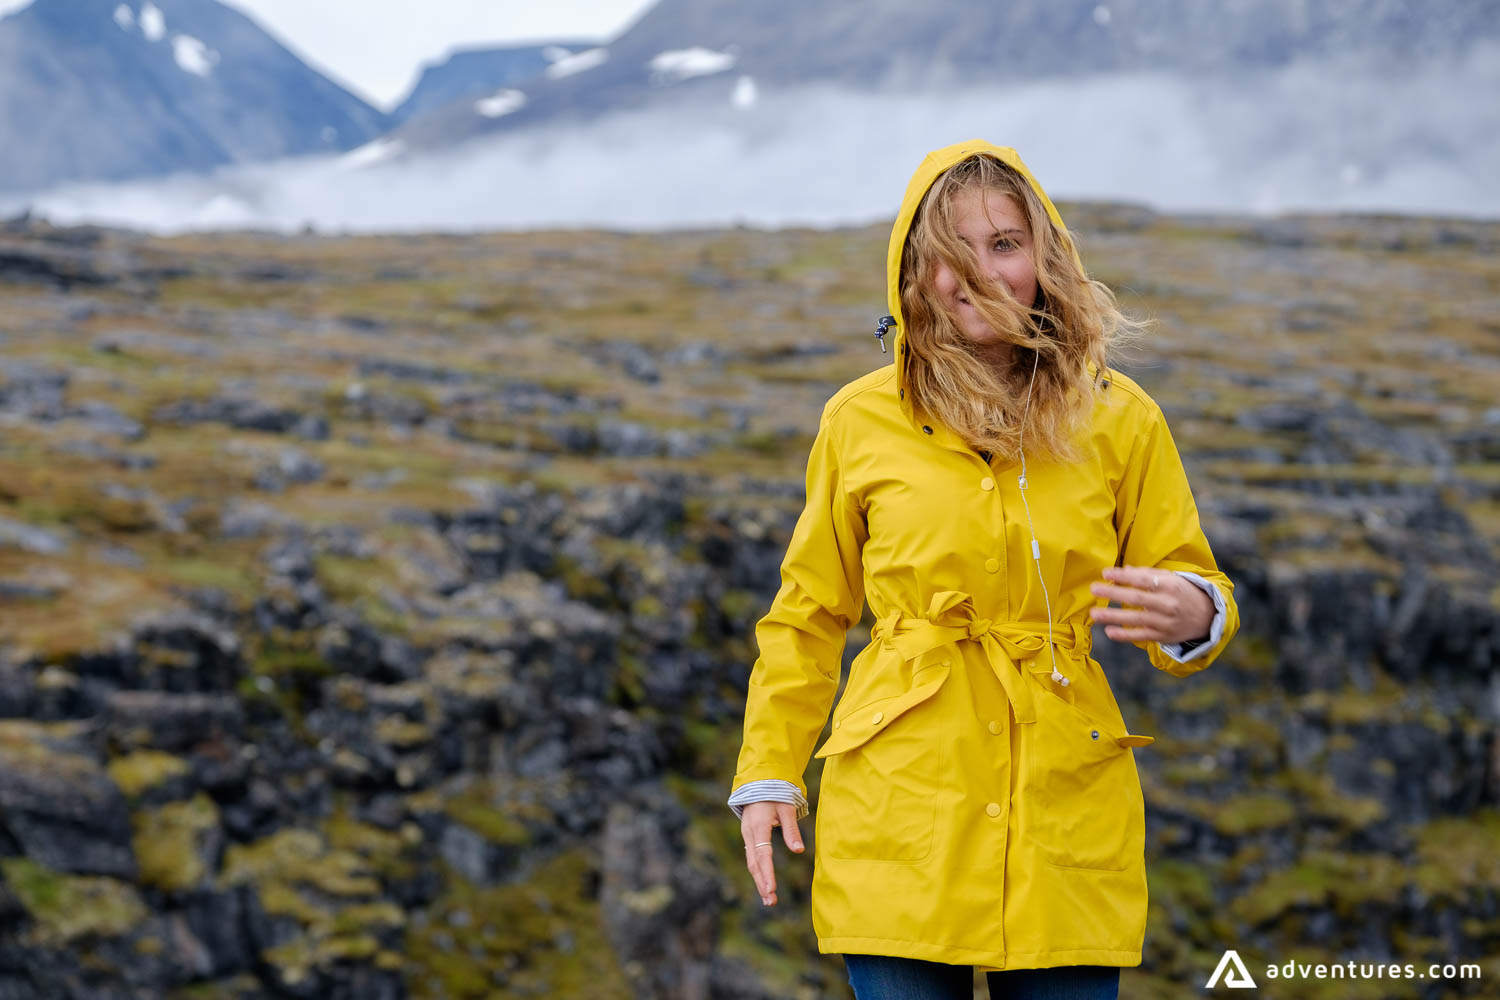 Girl with yellow jacket with a mountain view